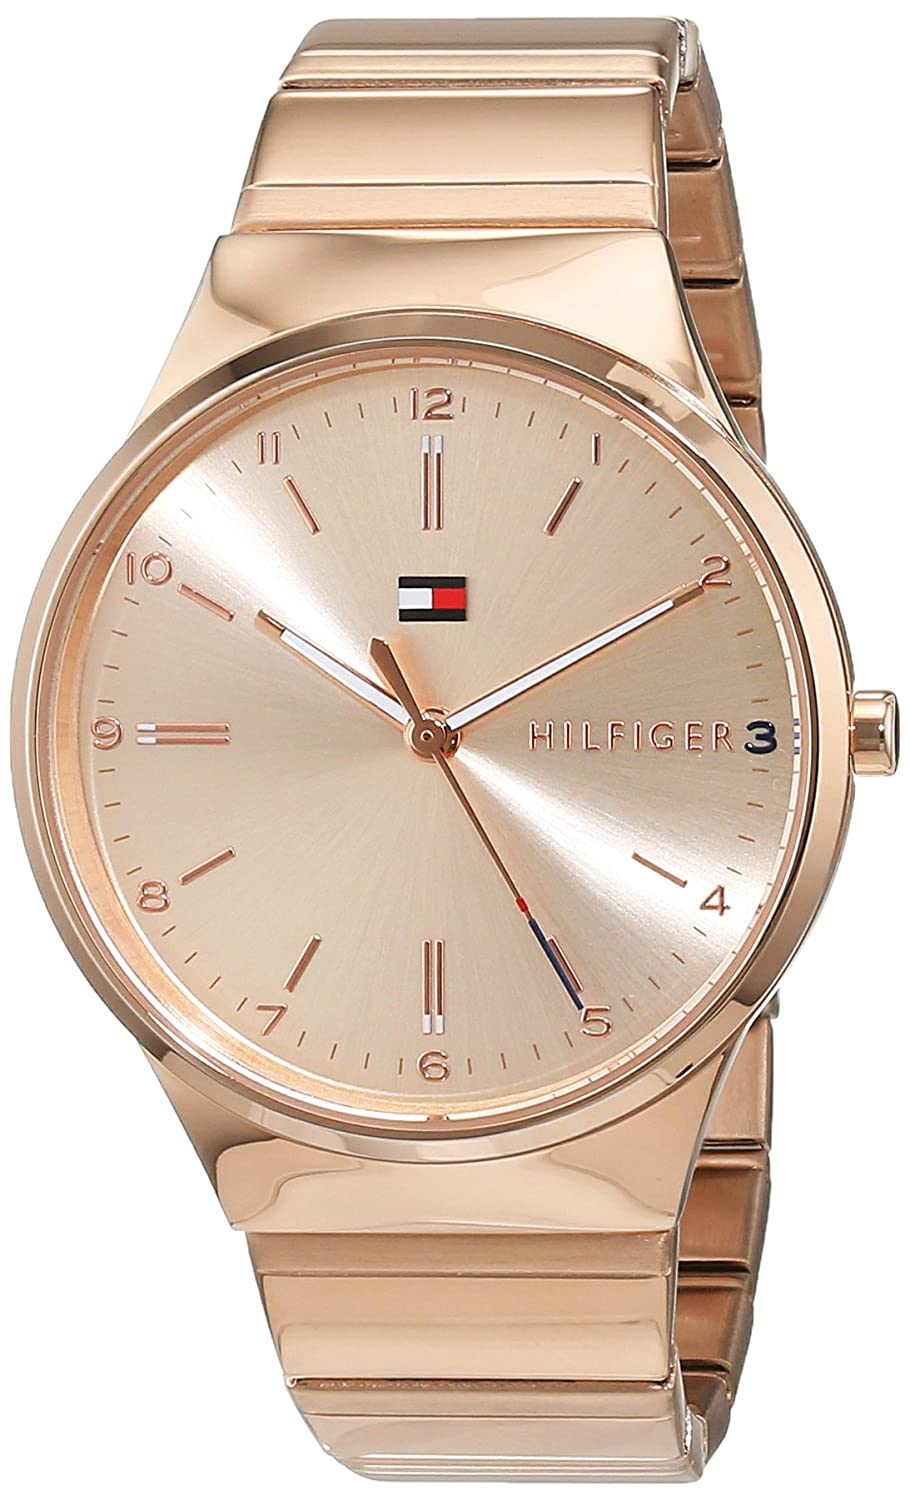 Amazon.com: Tommy hilfiger kate 1781799 Womens quartz watch: Tommy Hilfiger: Watches